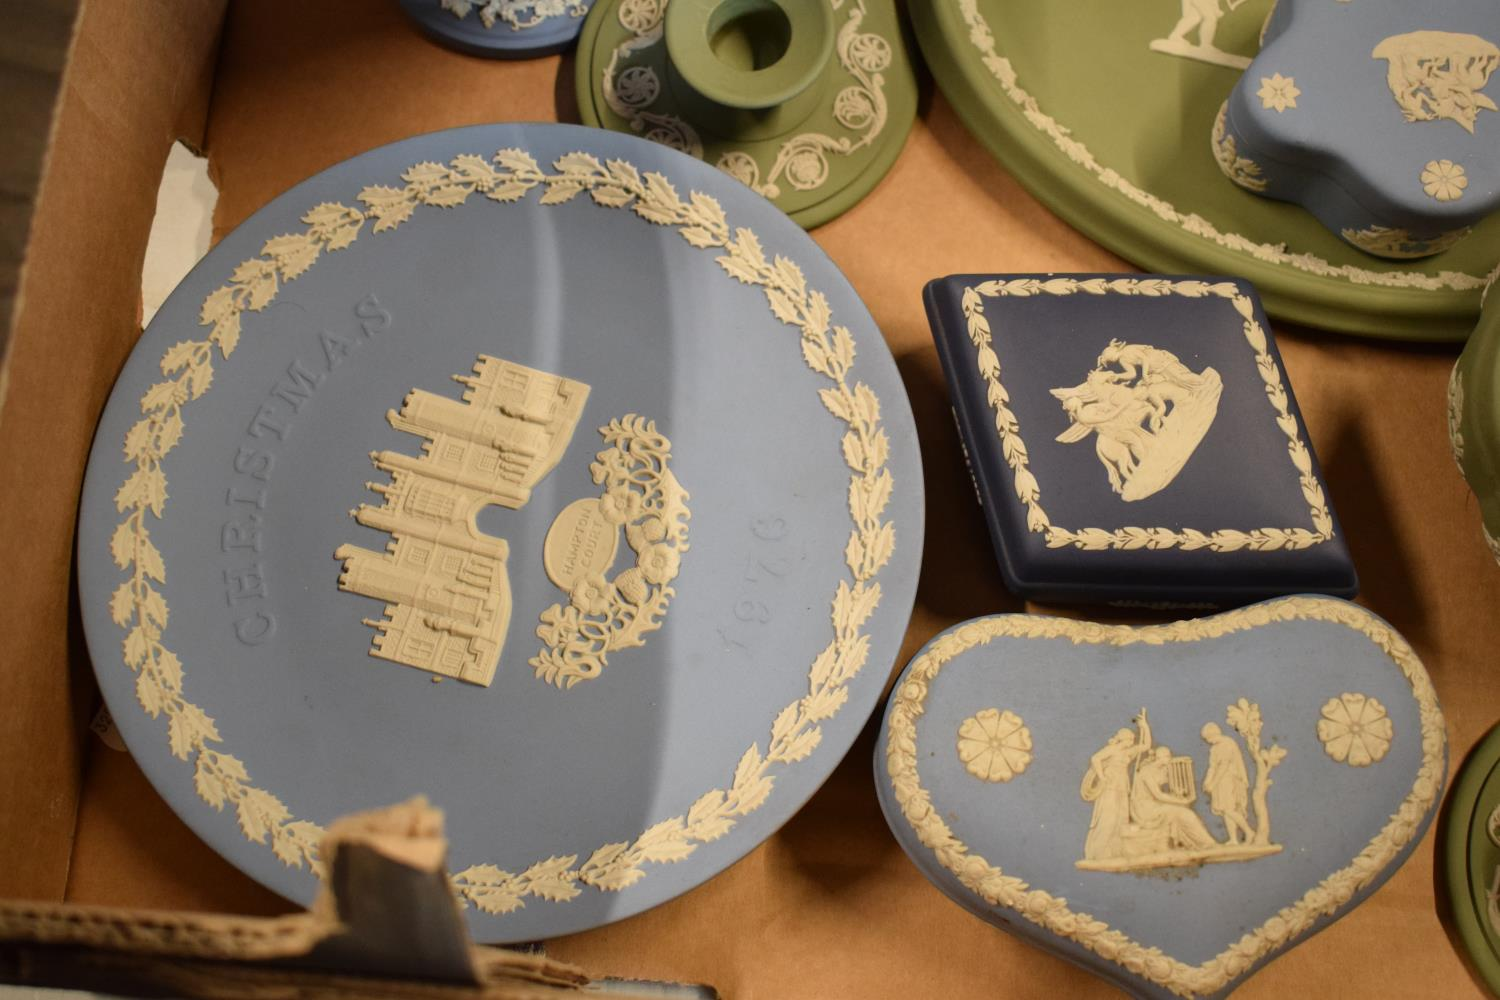 A collection of Wedgwood Jasperware to include vases, plates, trinkets etc in an array of colours to - Image 3 of 6